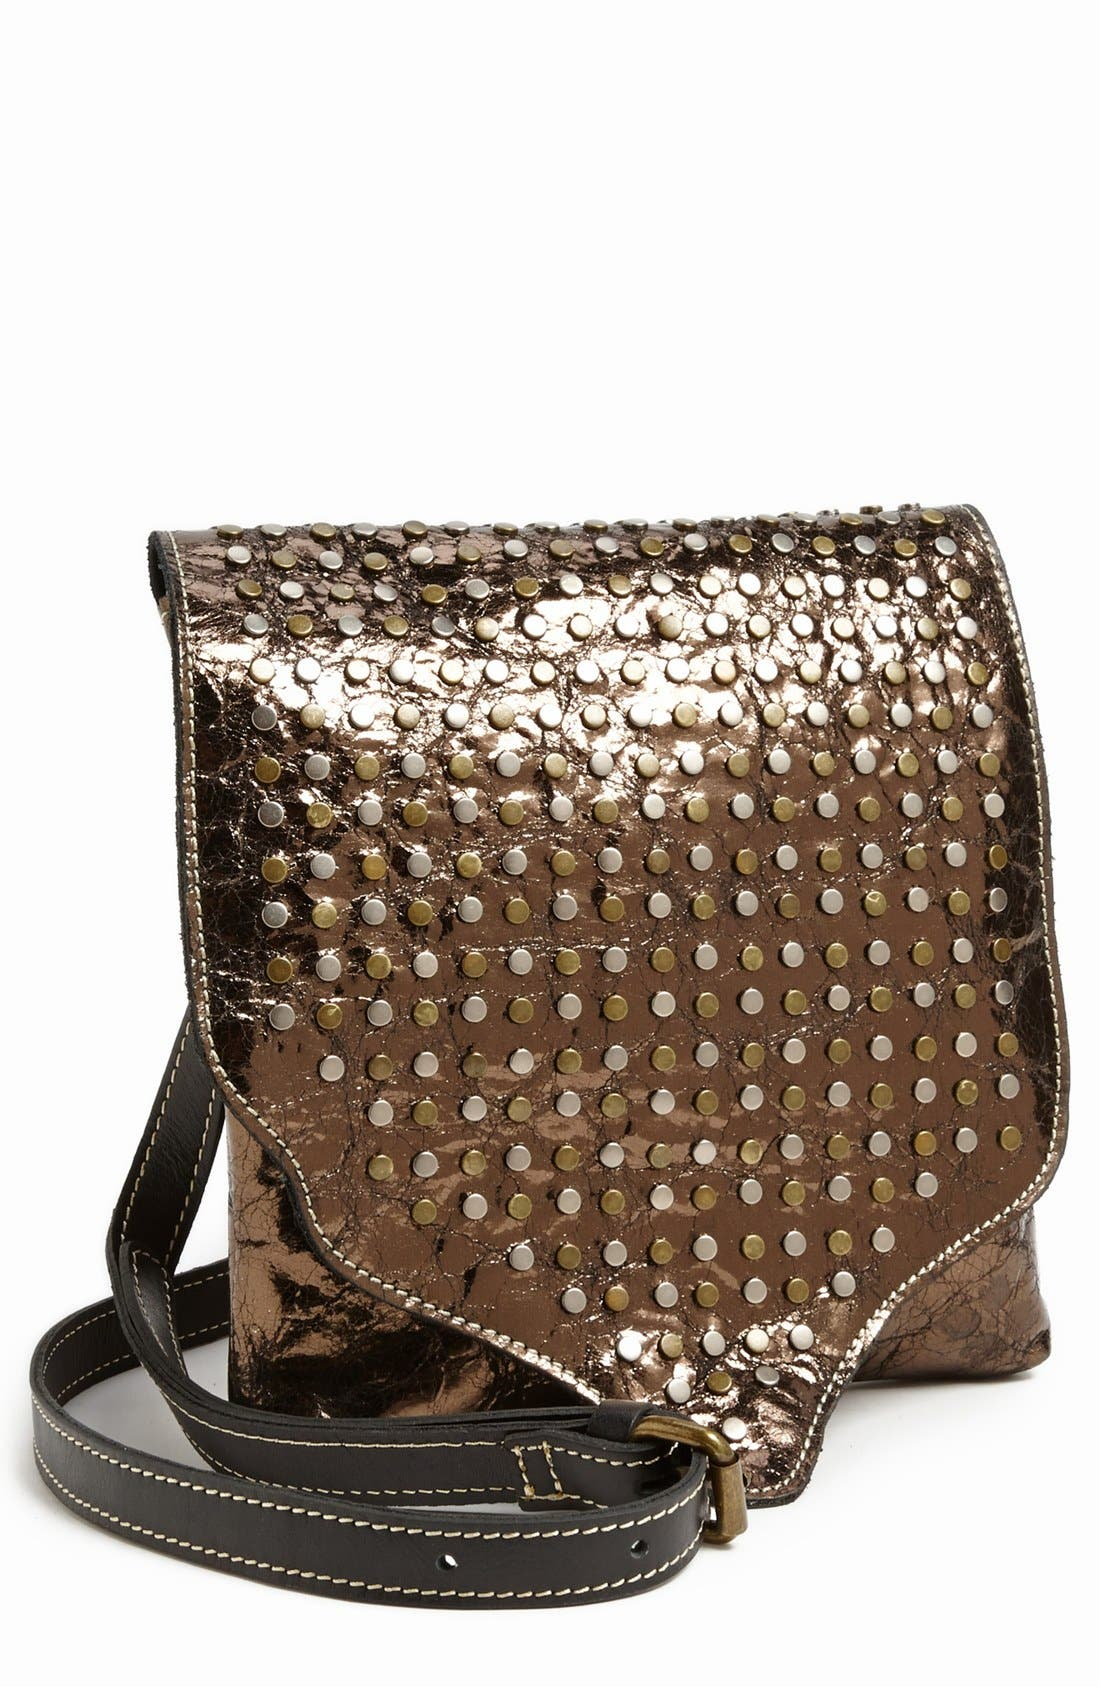 Main Image - Patricia Nash 'Granada' Crossbody Bag